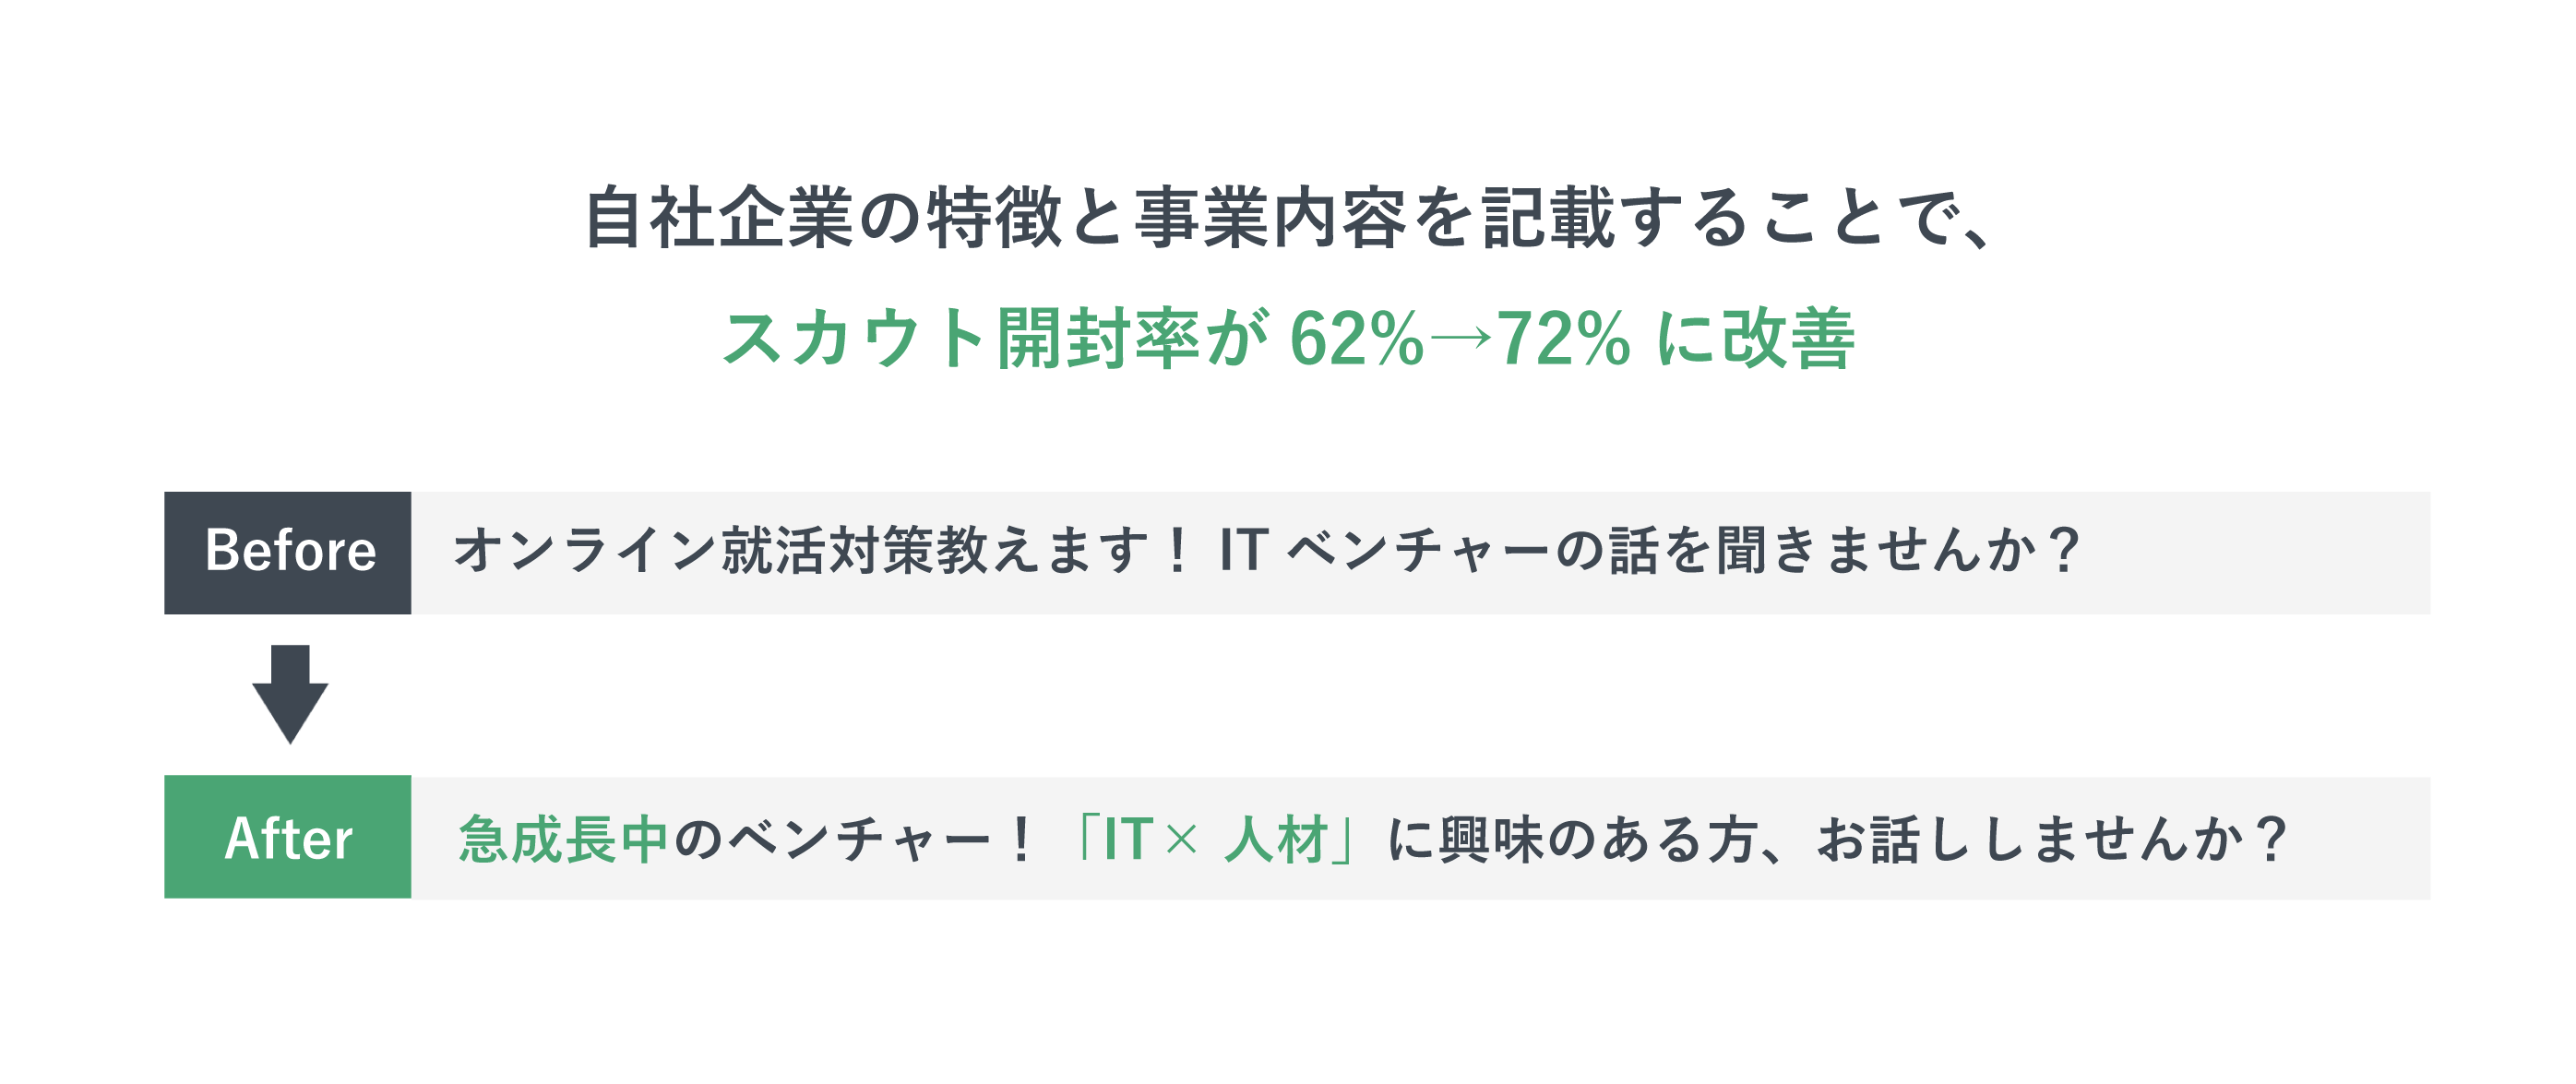 title7_2_アートボード 1